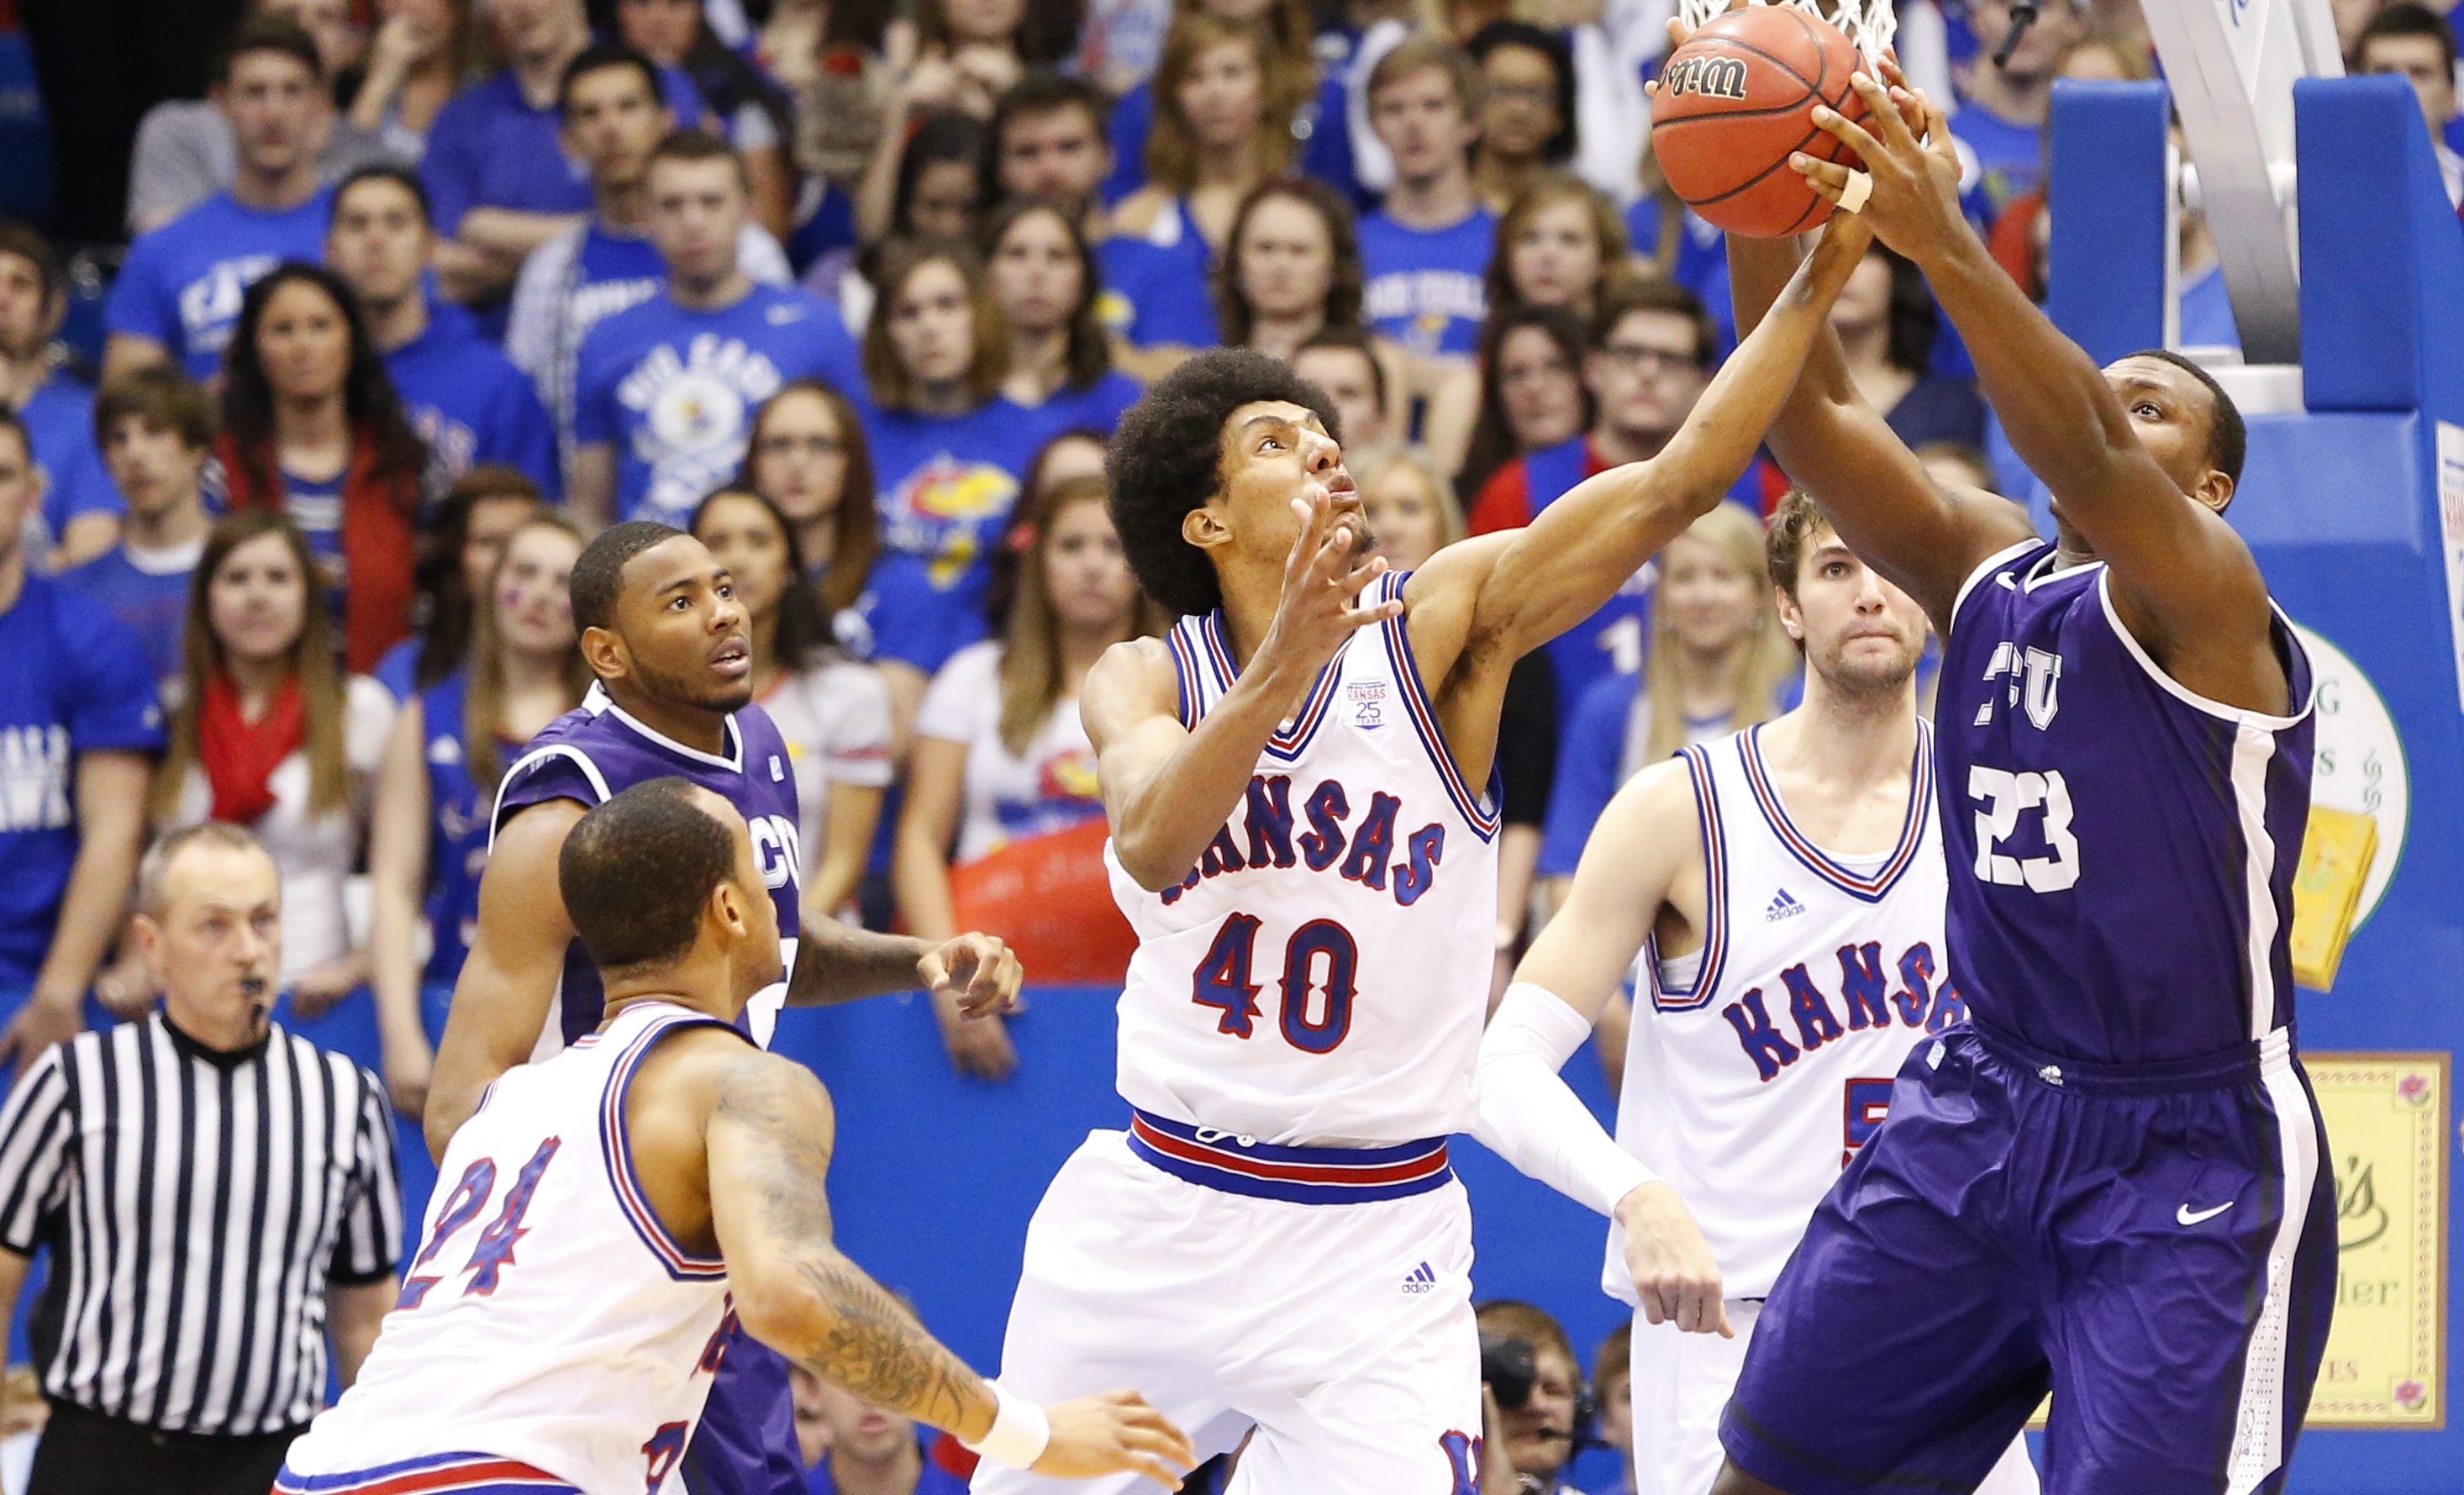 TCU coach Trent Johnson: Visiting Allen Fieldhouse 'eye-opening' experience for players | News ...